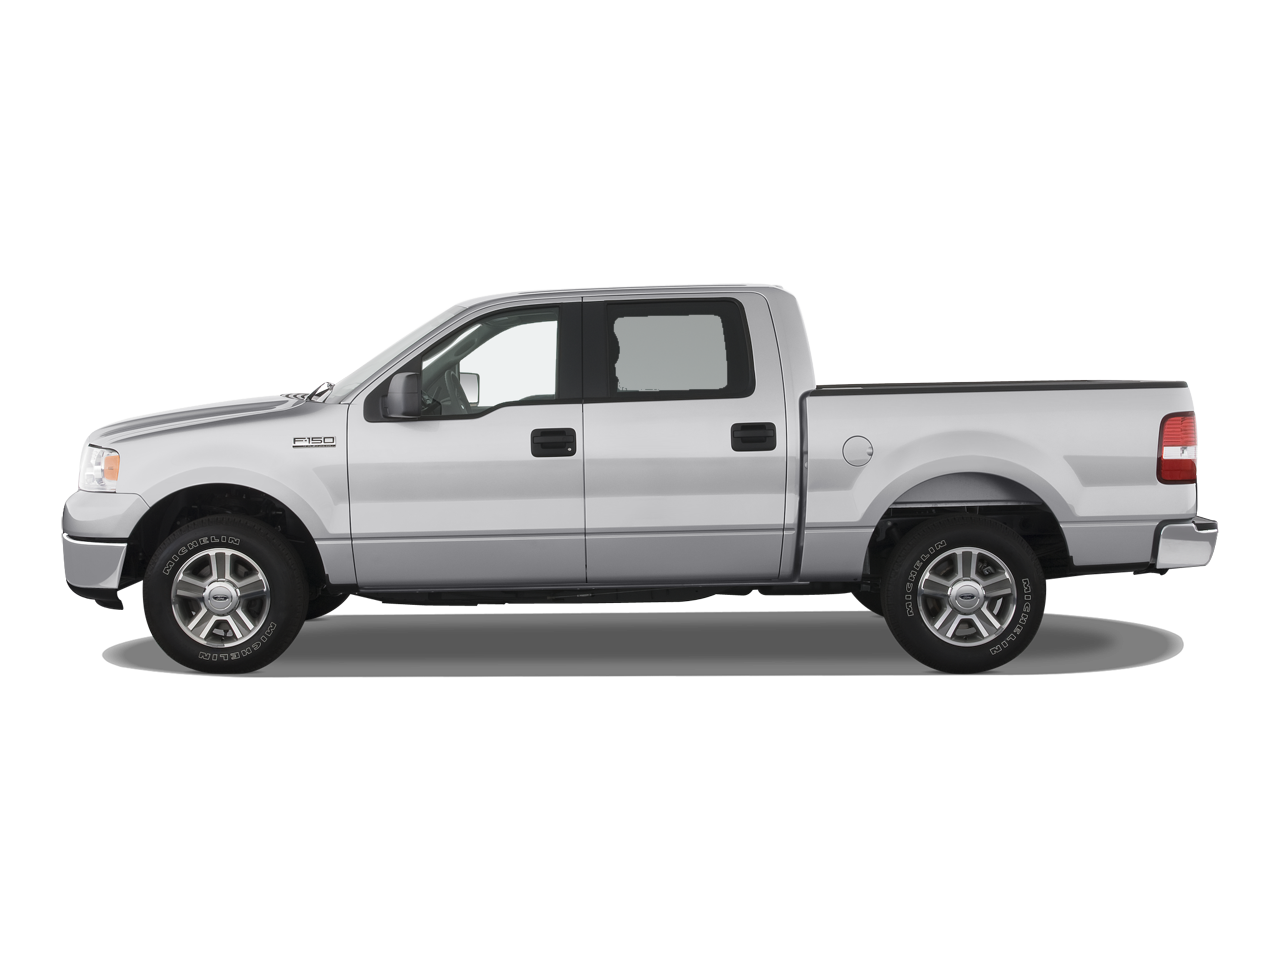 2015 Ford F 150 Regular Cab >> LP-Powered 2008 Ford F150 Roush Truck - Fuel Efficient News, Car Features and Reviews ...